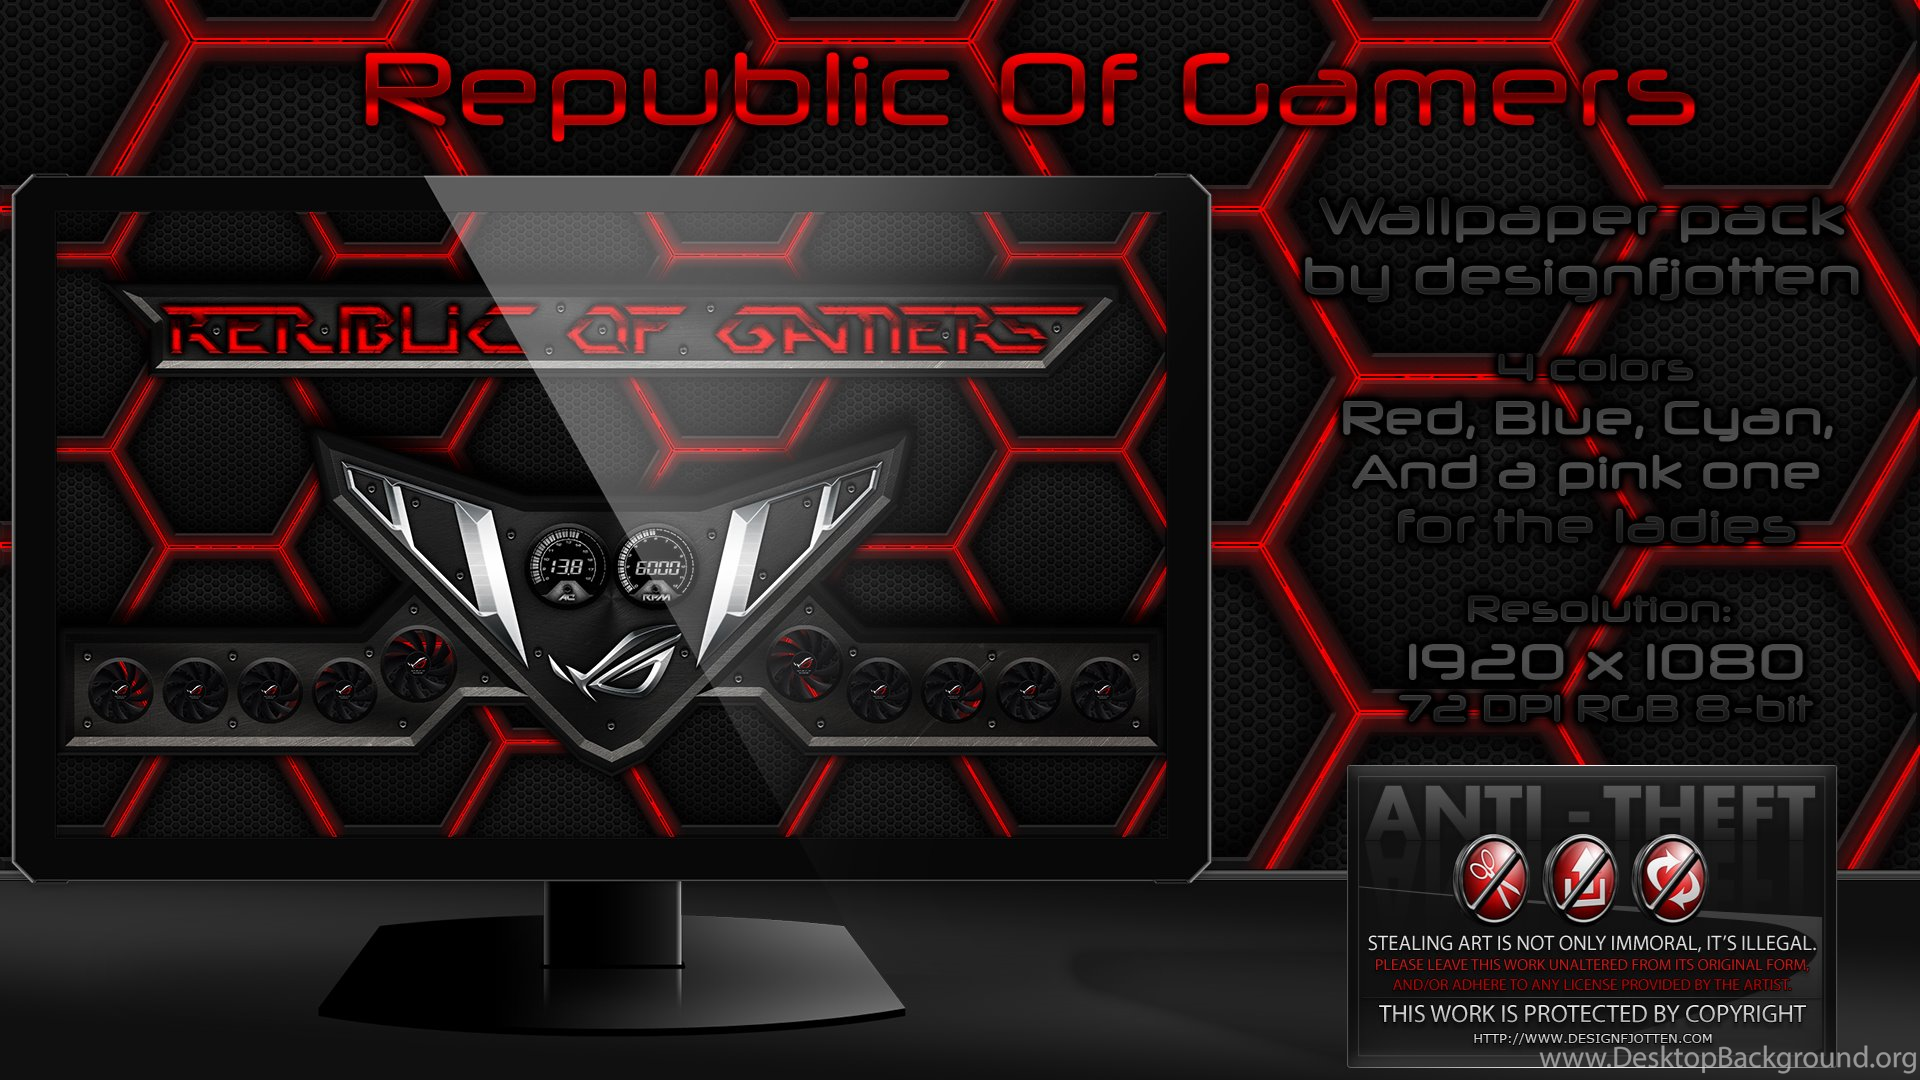 Ripublic Of Gamers Wallpapers Pack By Designfjotten On